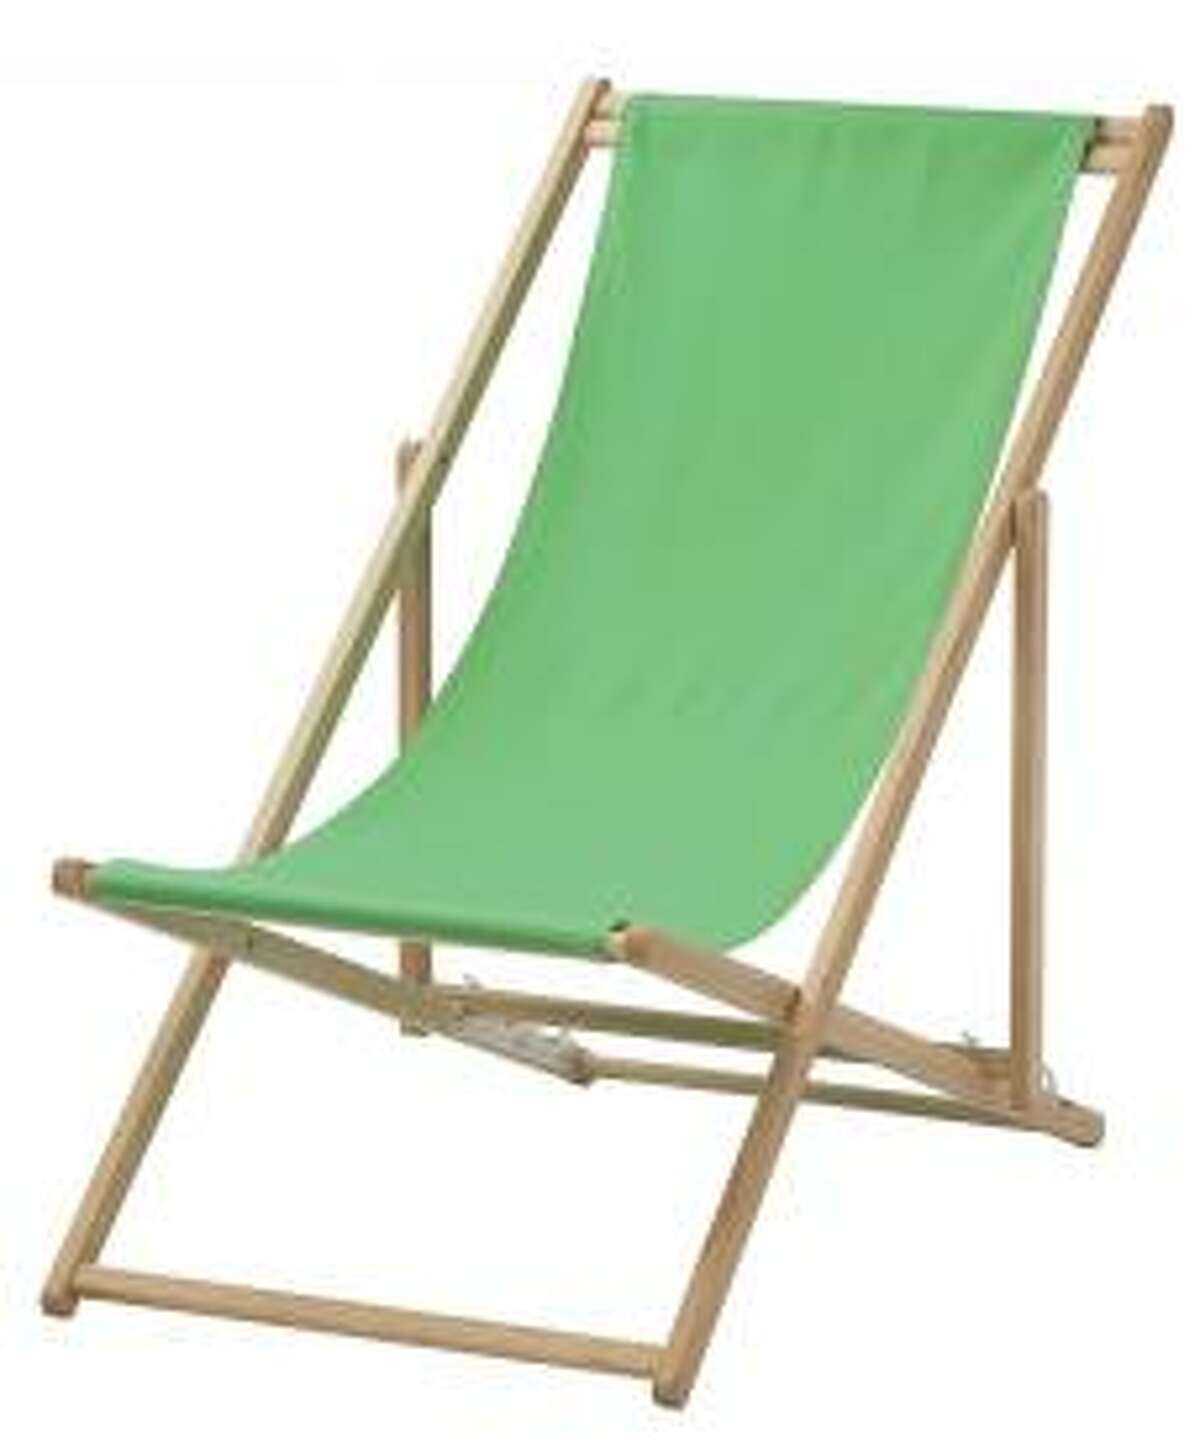 Product Name: IKEA MYSINGS?- beach chairs Safety Concerns:The beach chairs can collapse, posing fall and fingertip amputation hazards. Recall Date: Jan. 27, 2017 Source: CPSC